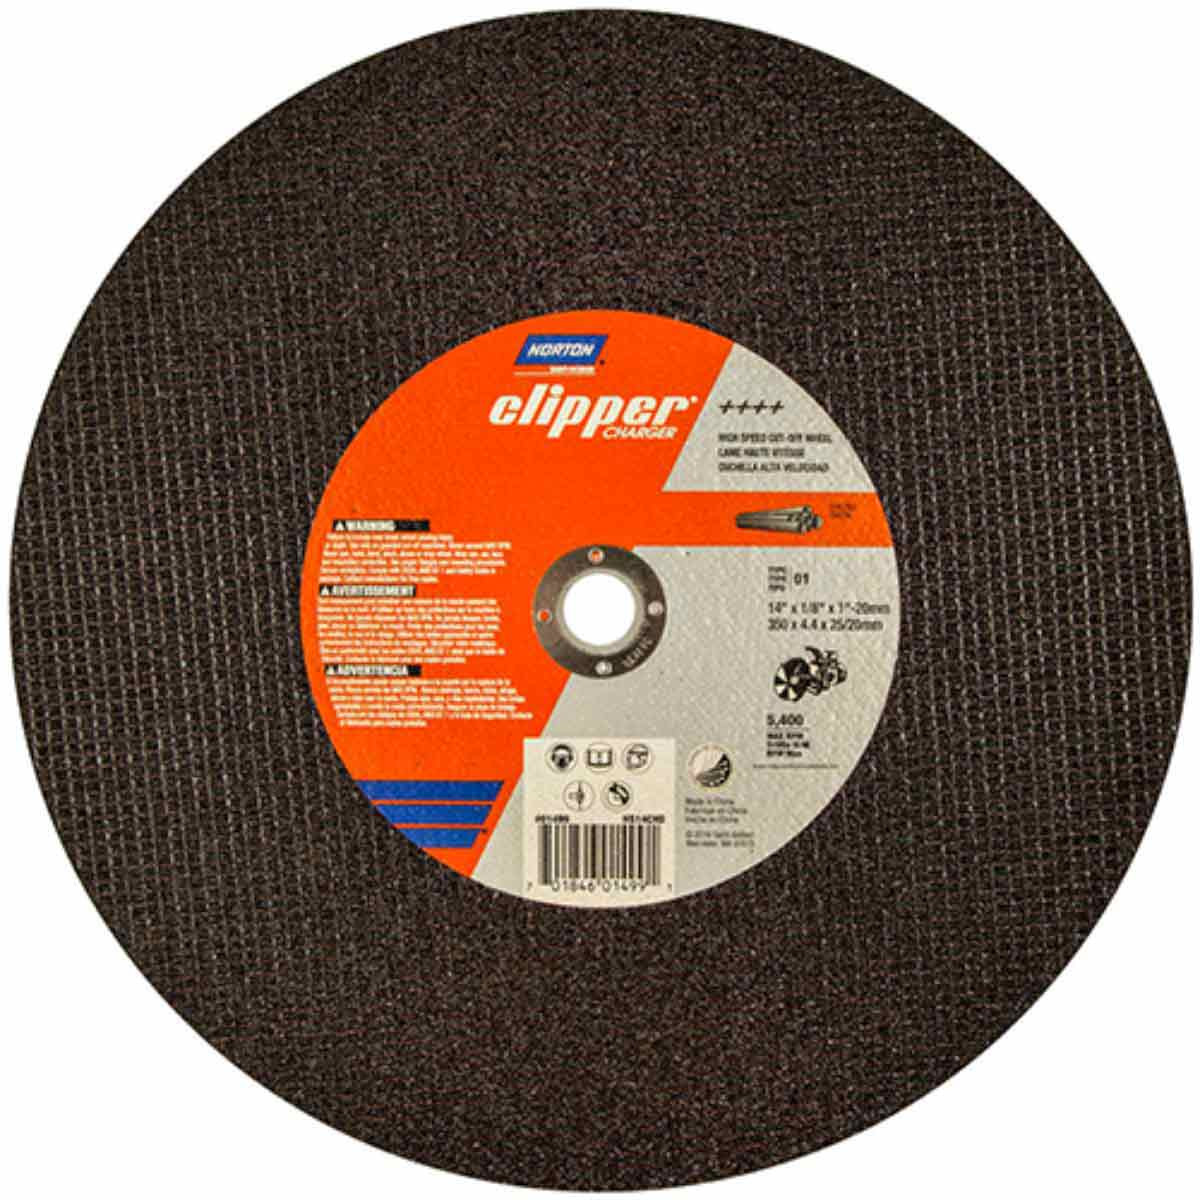 Norton Clipper Abrasive wheels